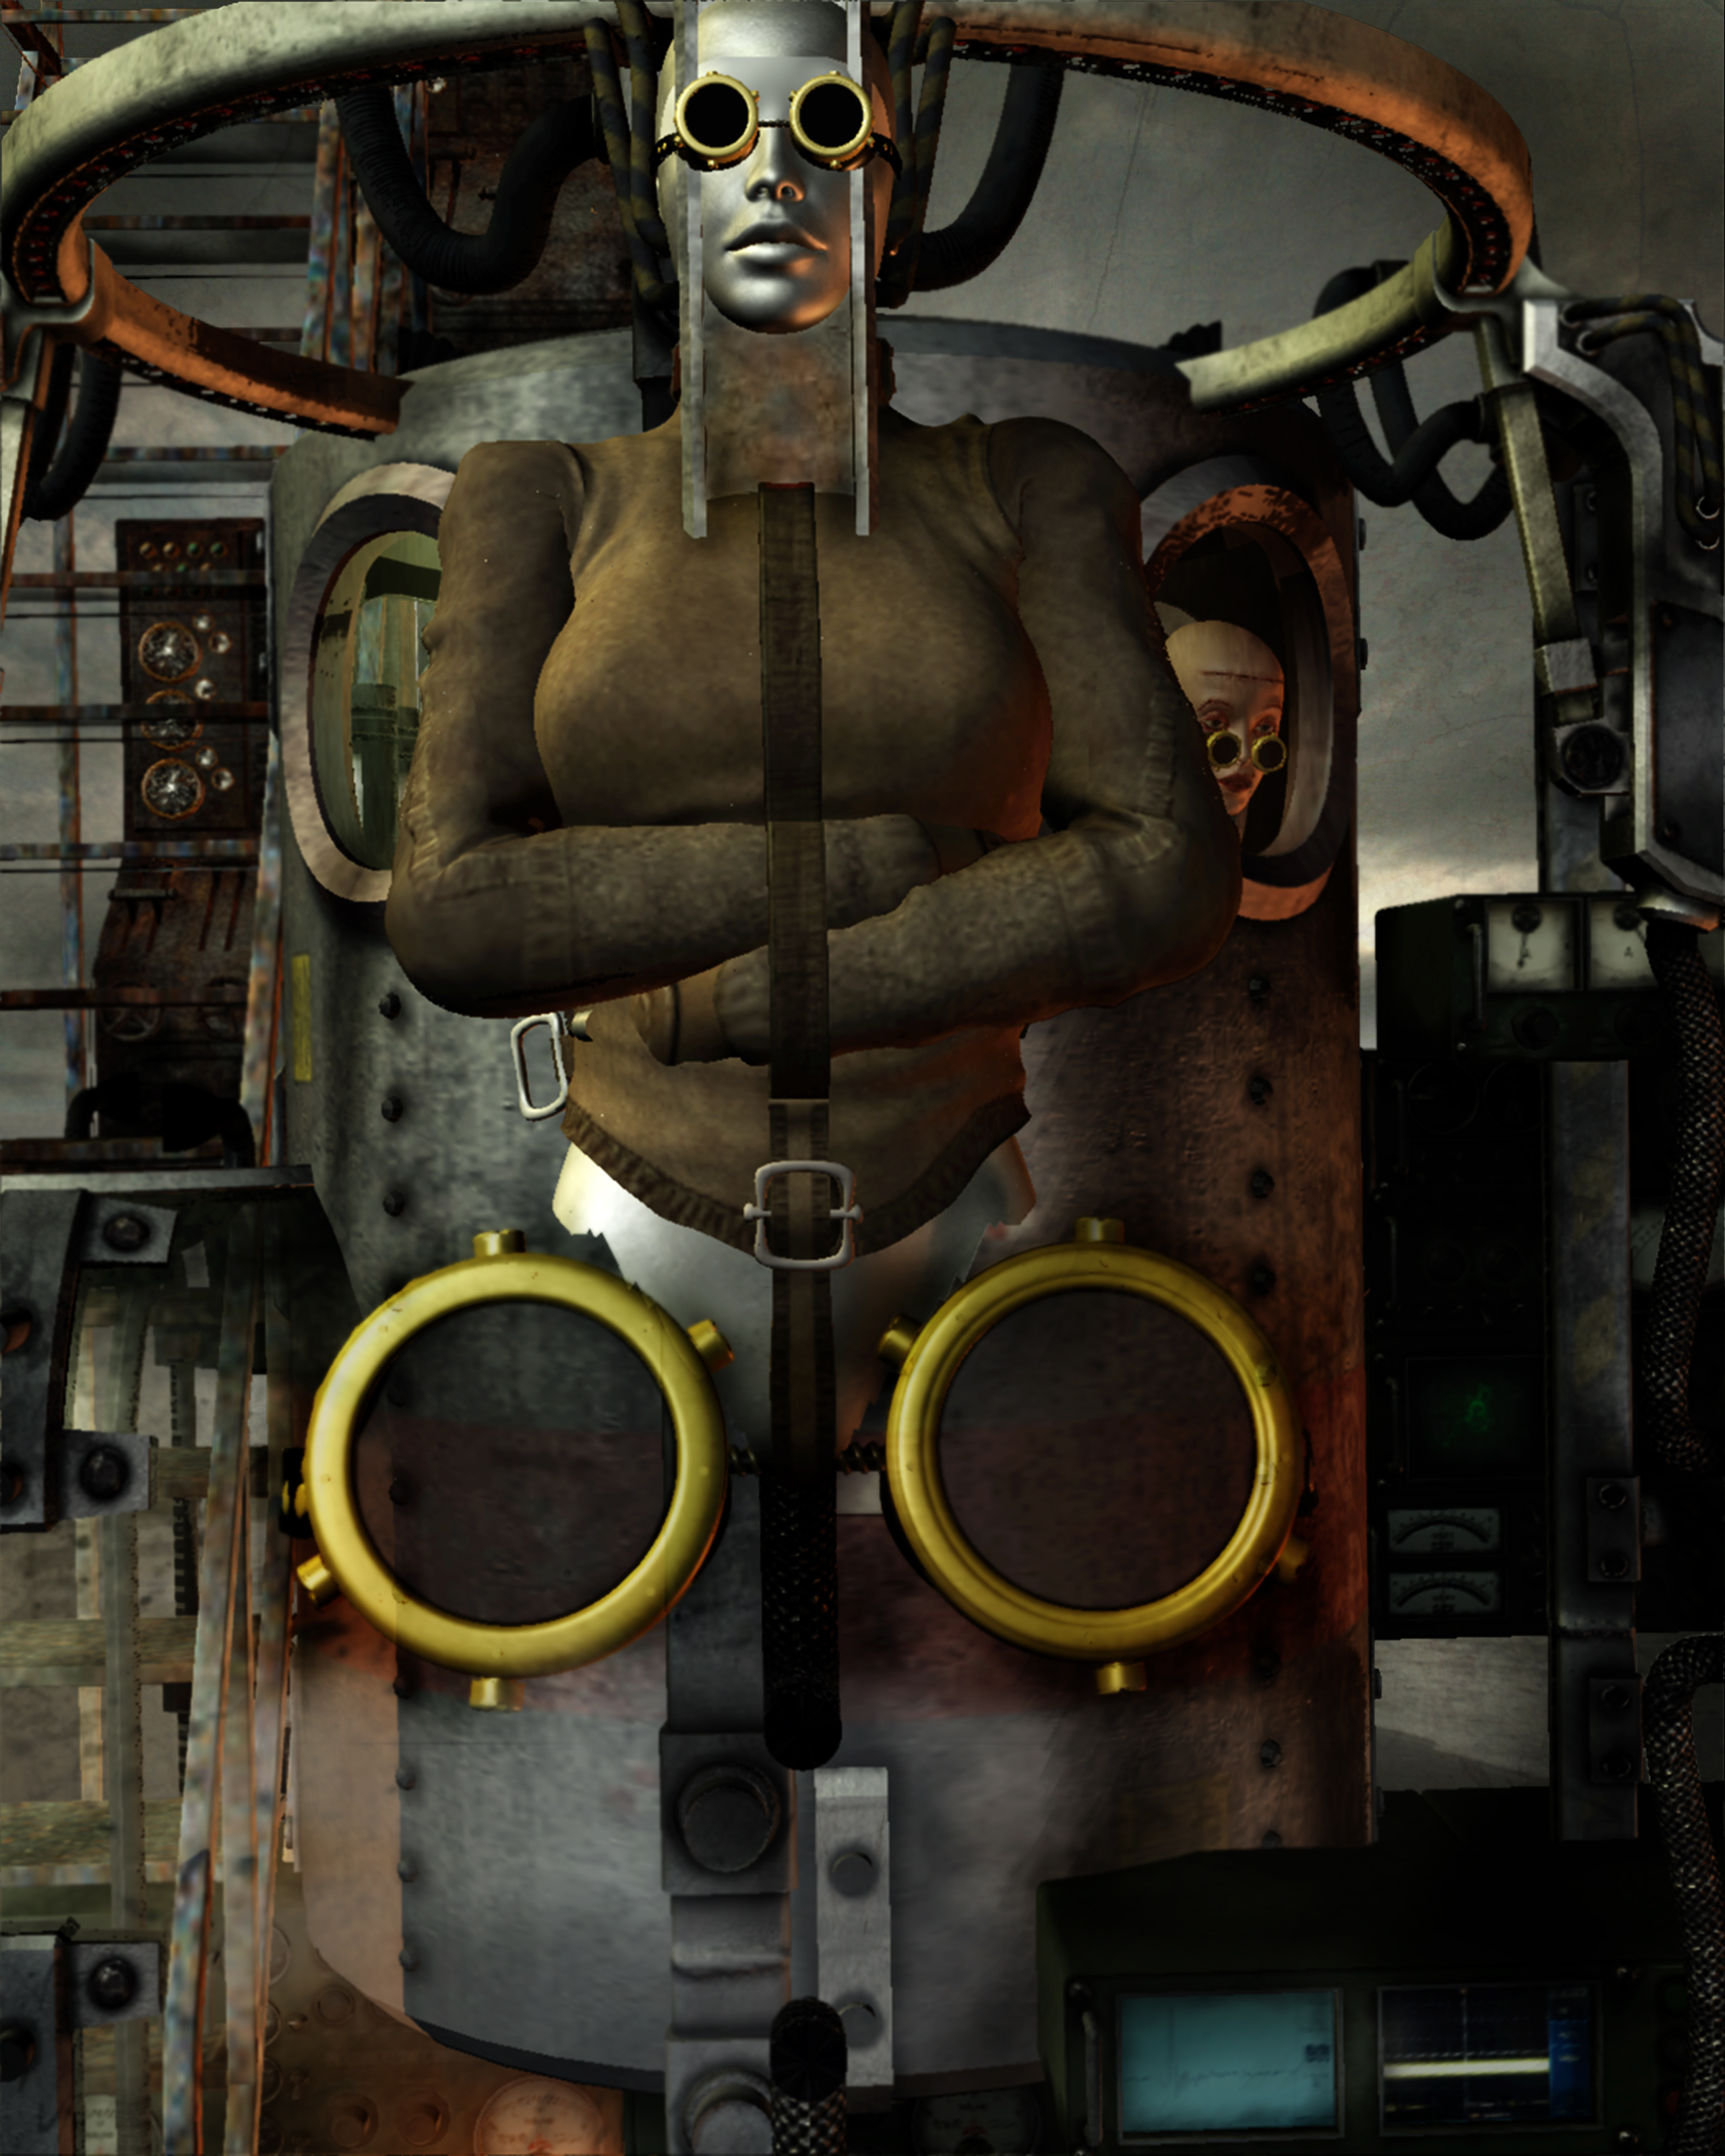 Confrontational-appearing steampunk cyborg of woman with metallic skin in straitjacket, wearing black-lensed goggles, attached to pressure tank, larger goggles at hip level. Various vacuum tube instruments attached to tank. Woman's face with same features as cyborg visible at round tank window as she peers from inside. Stormy sky in background.